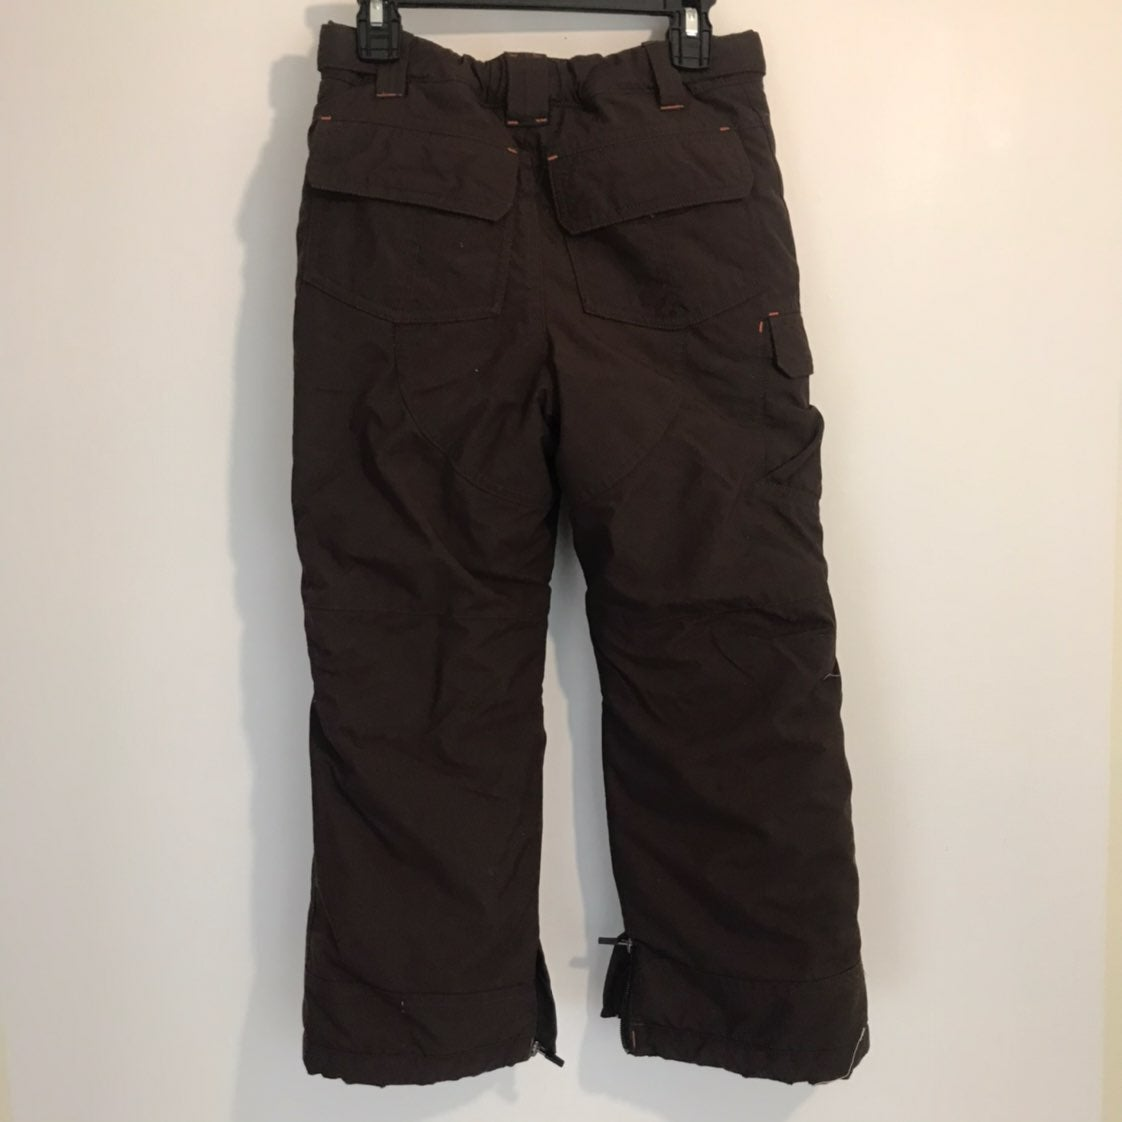 LL Bean Brown Thinsulate Snow Pants 6x-7